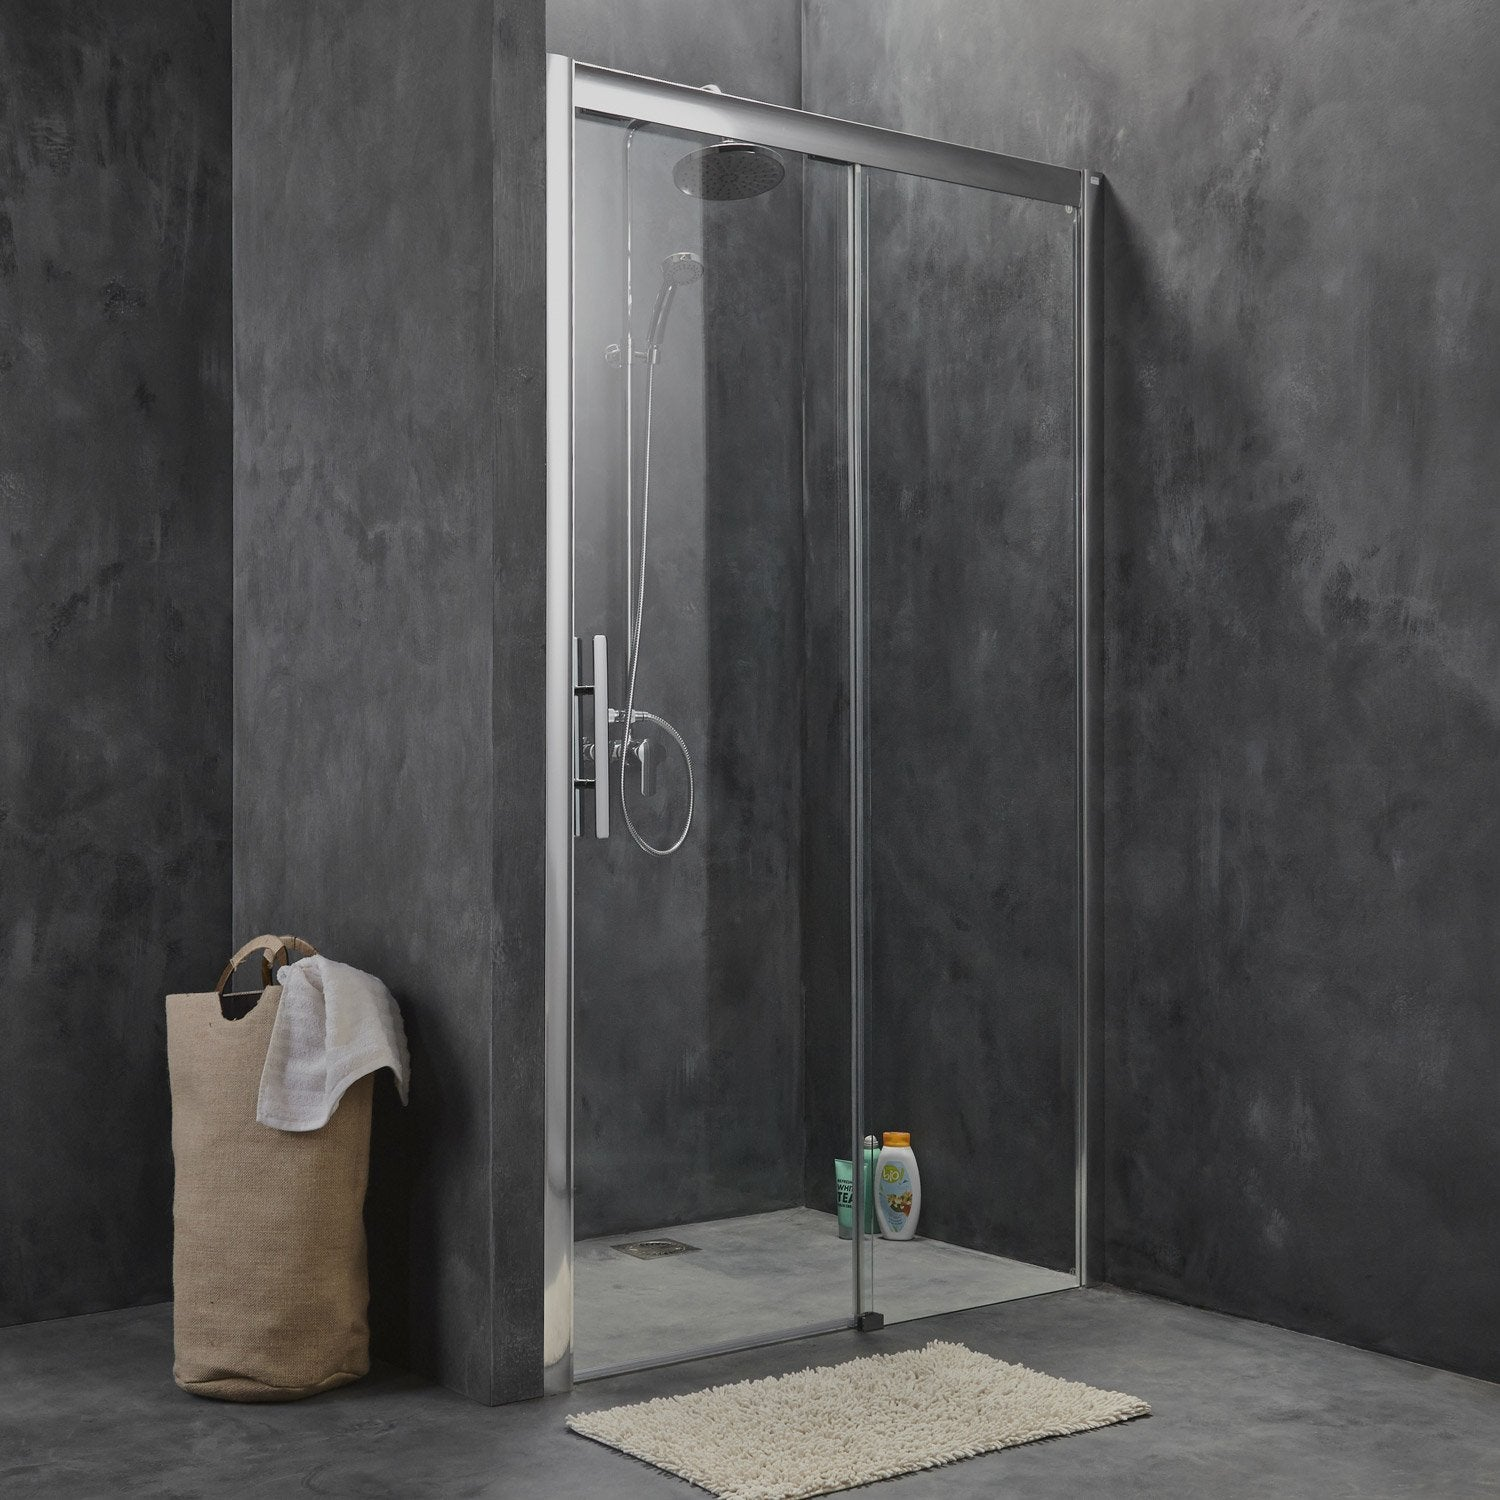 Porte de douche coulissante 120 cm transparent adena for Porte accordeon pour douche